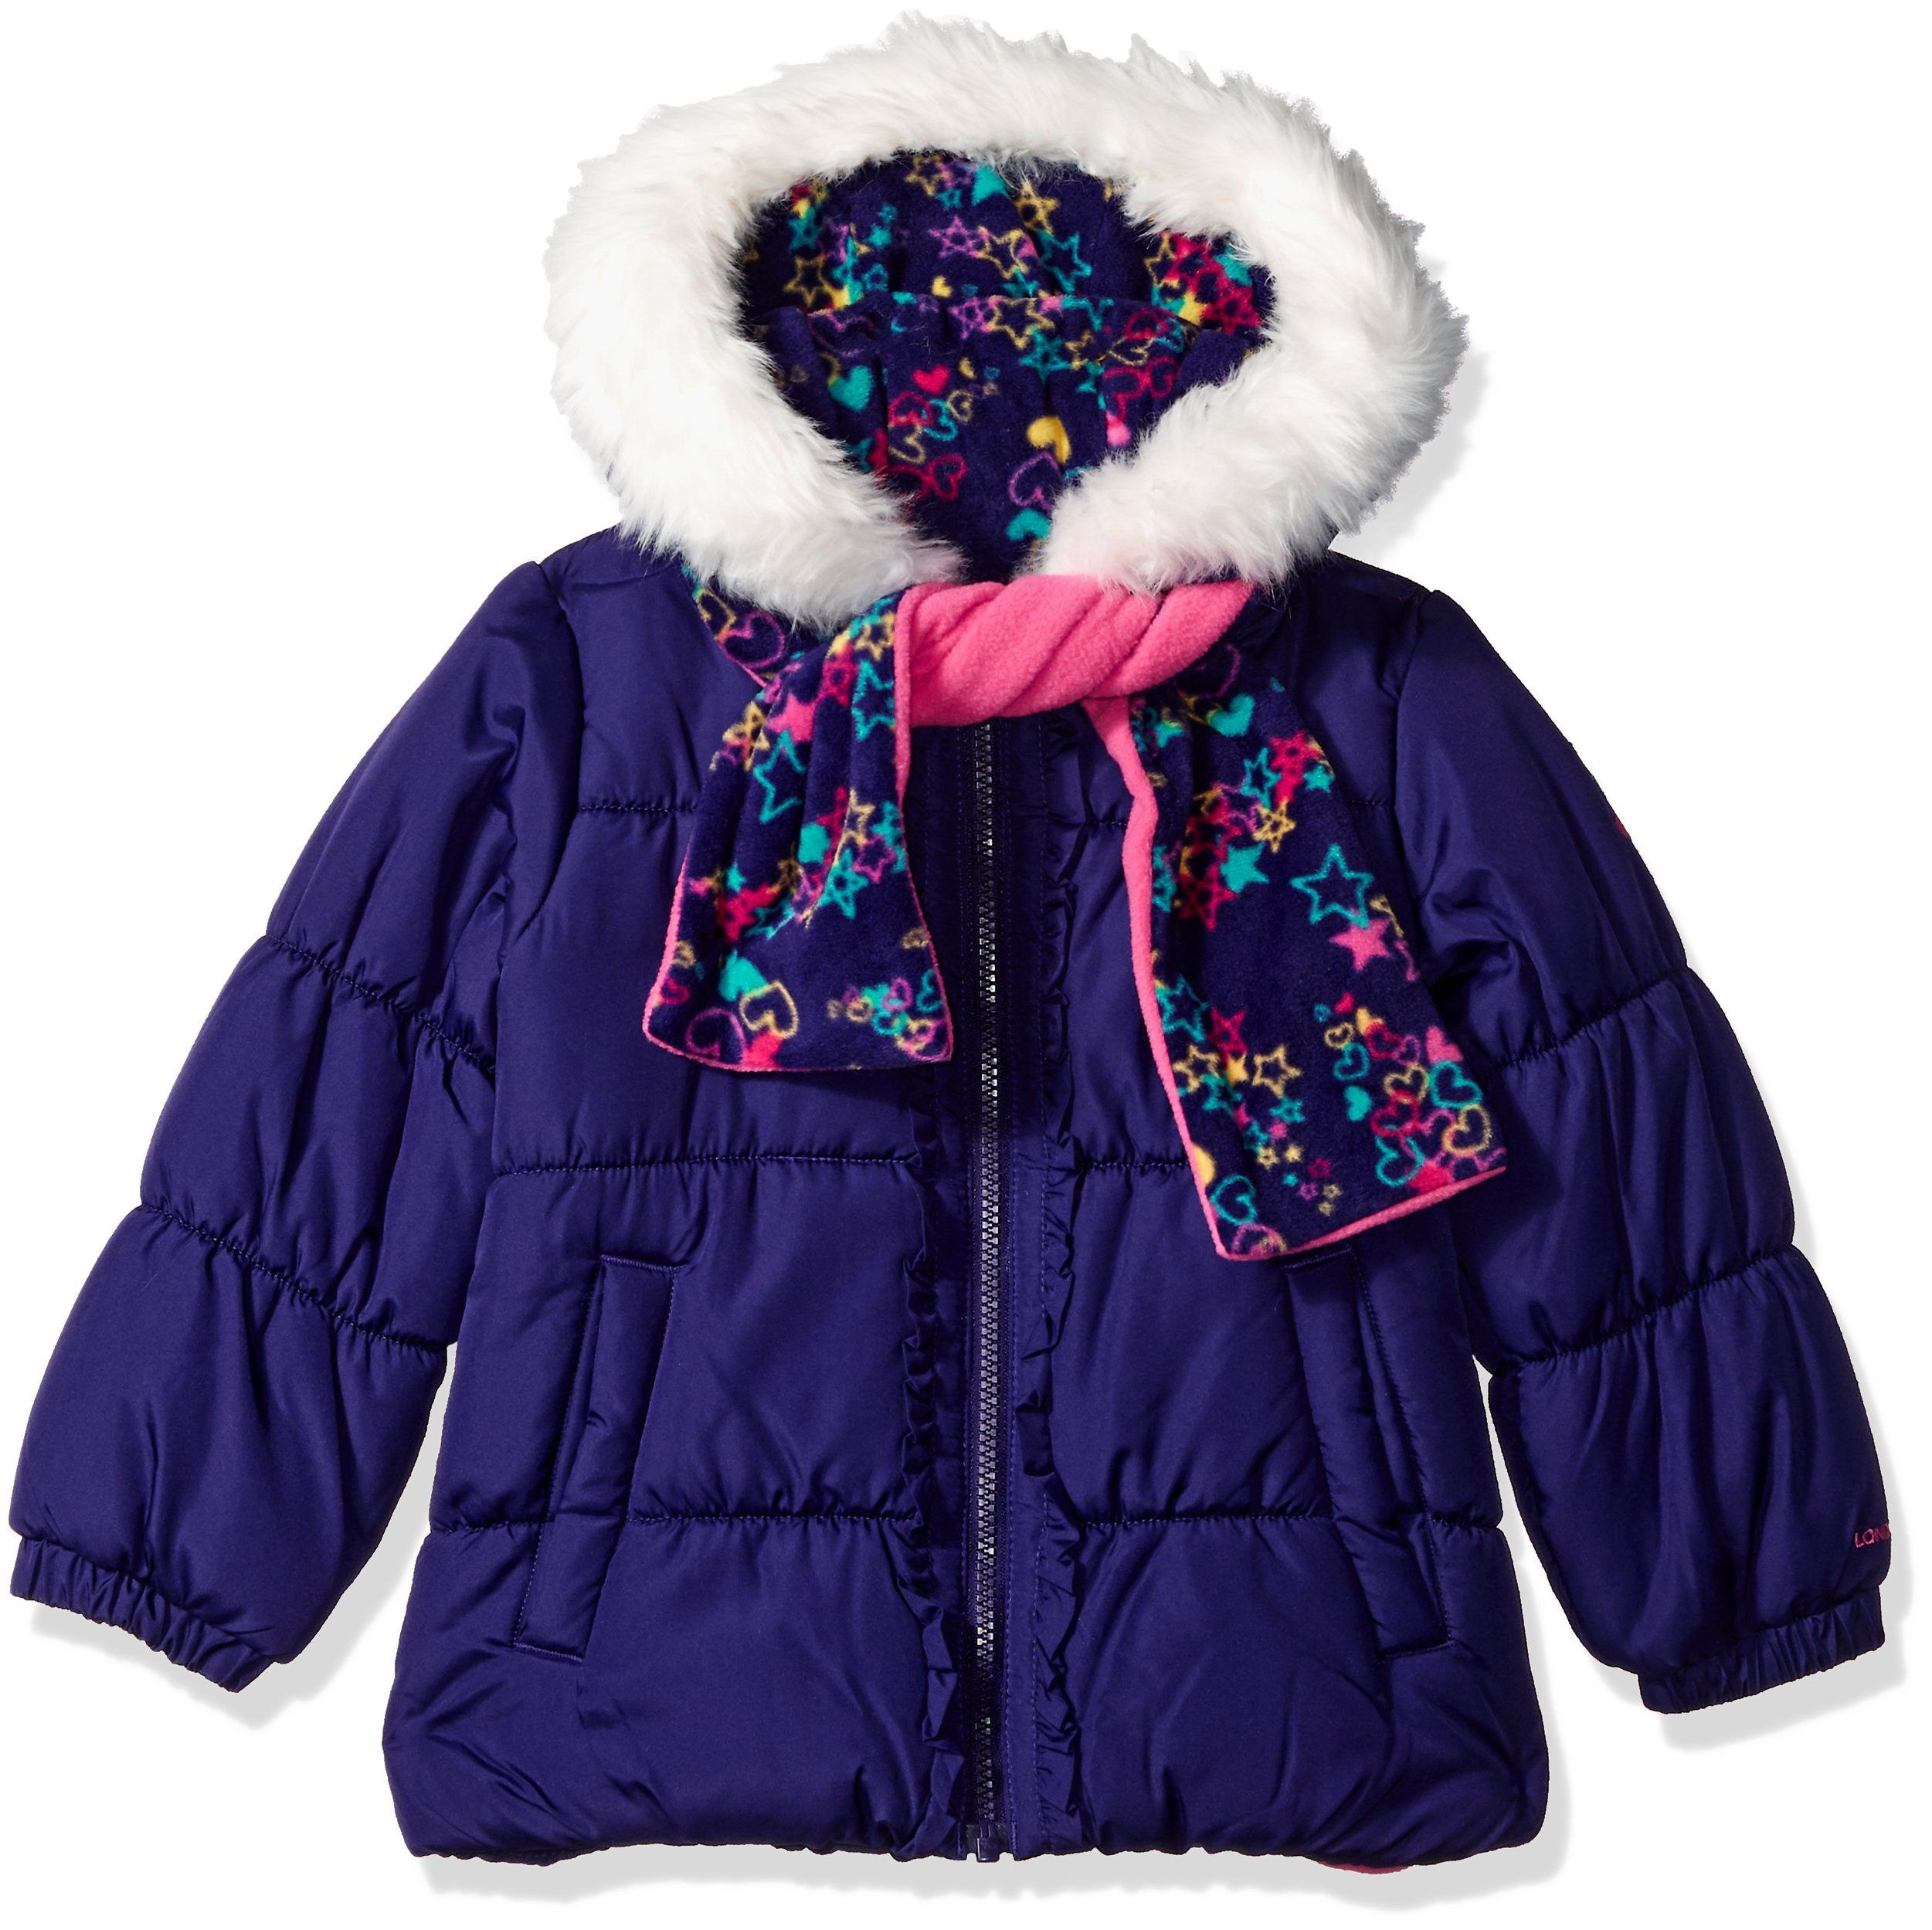 London Fog Girls Toddler Winter Coat with Hat /& Scarf